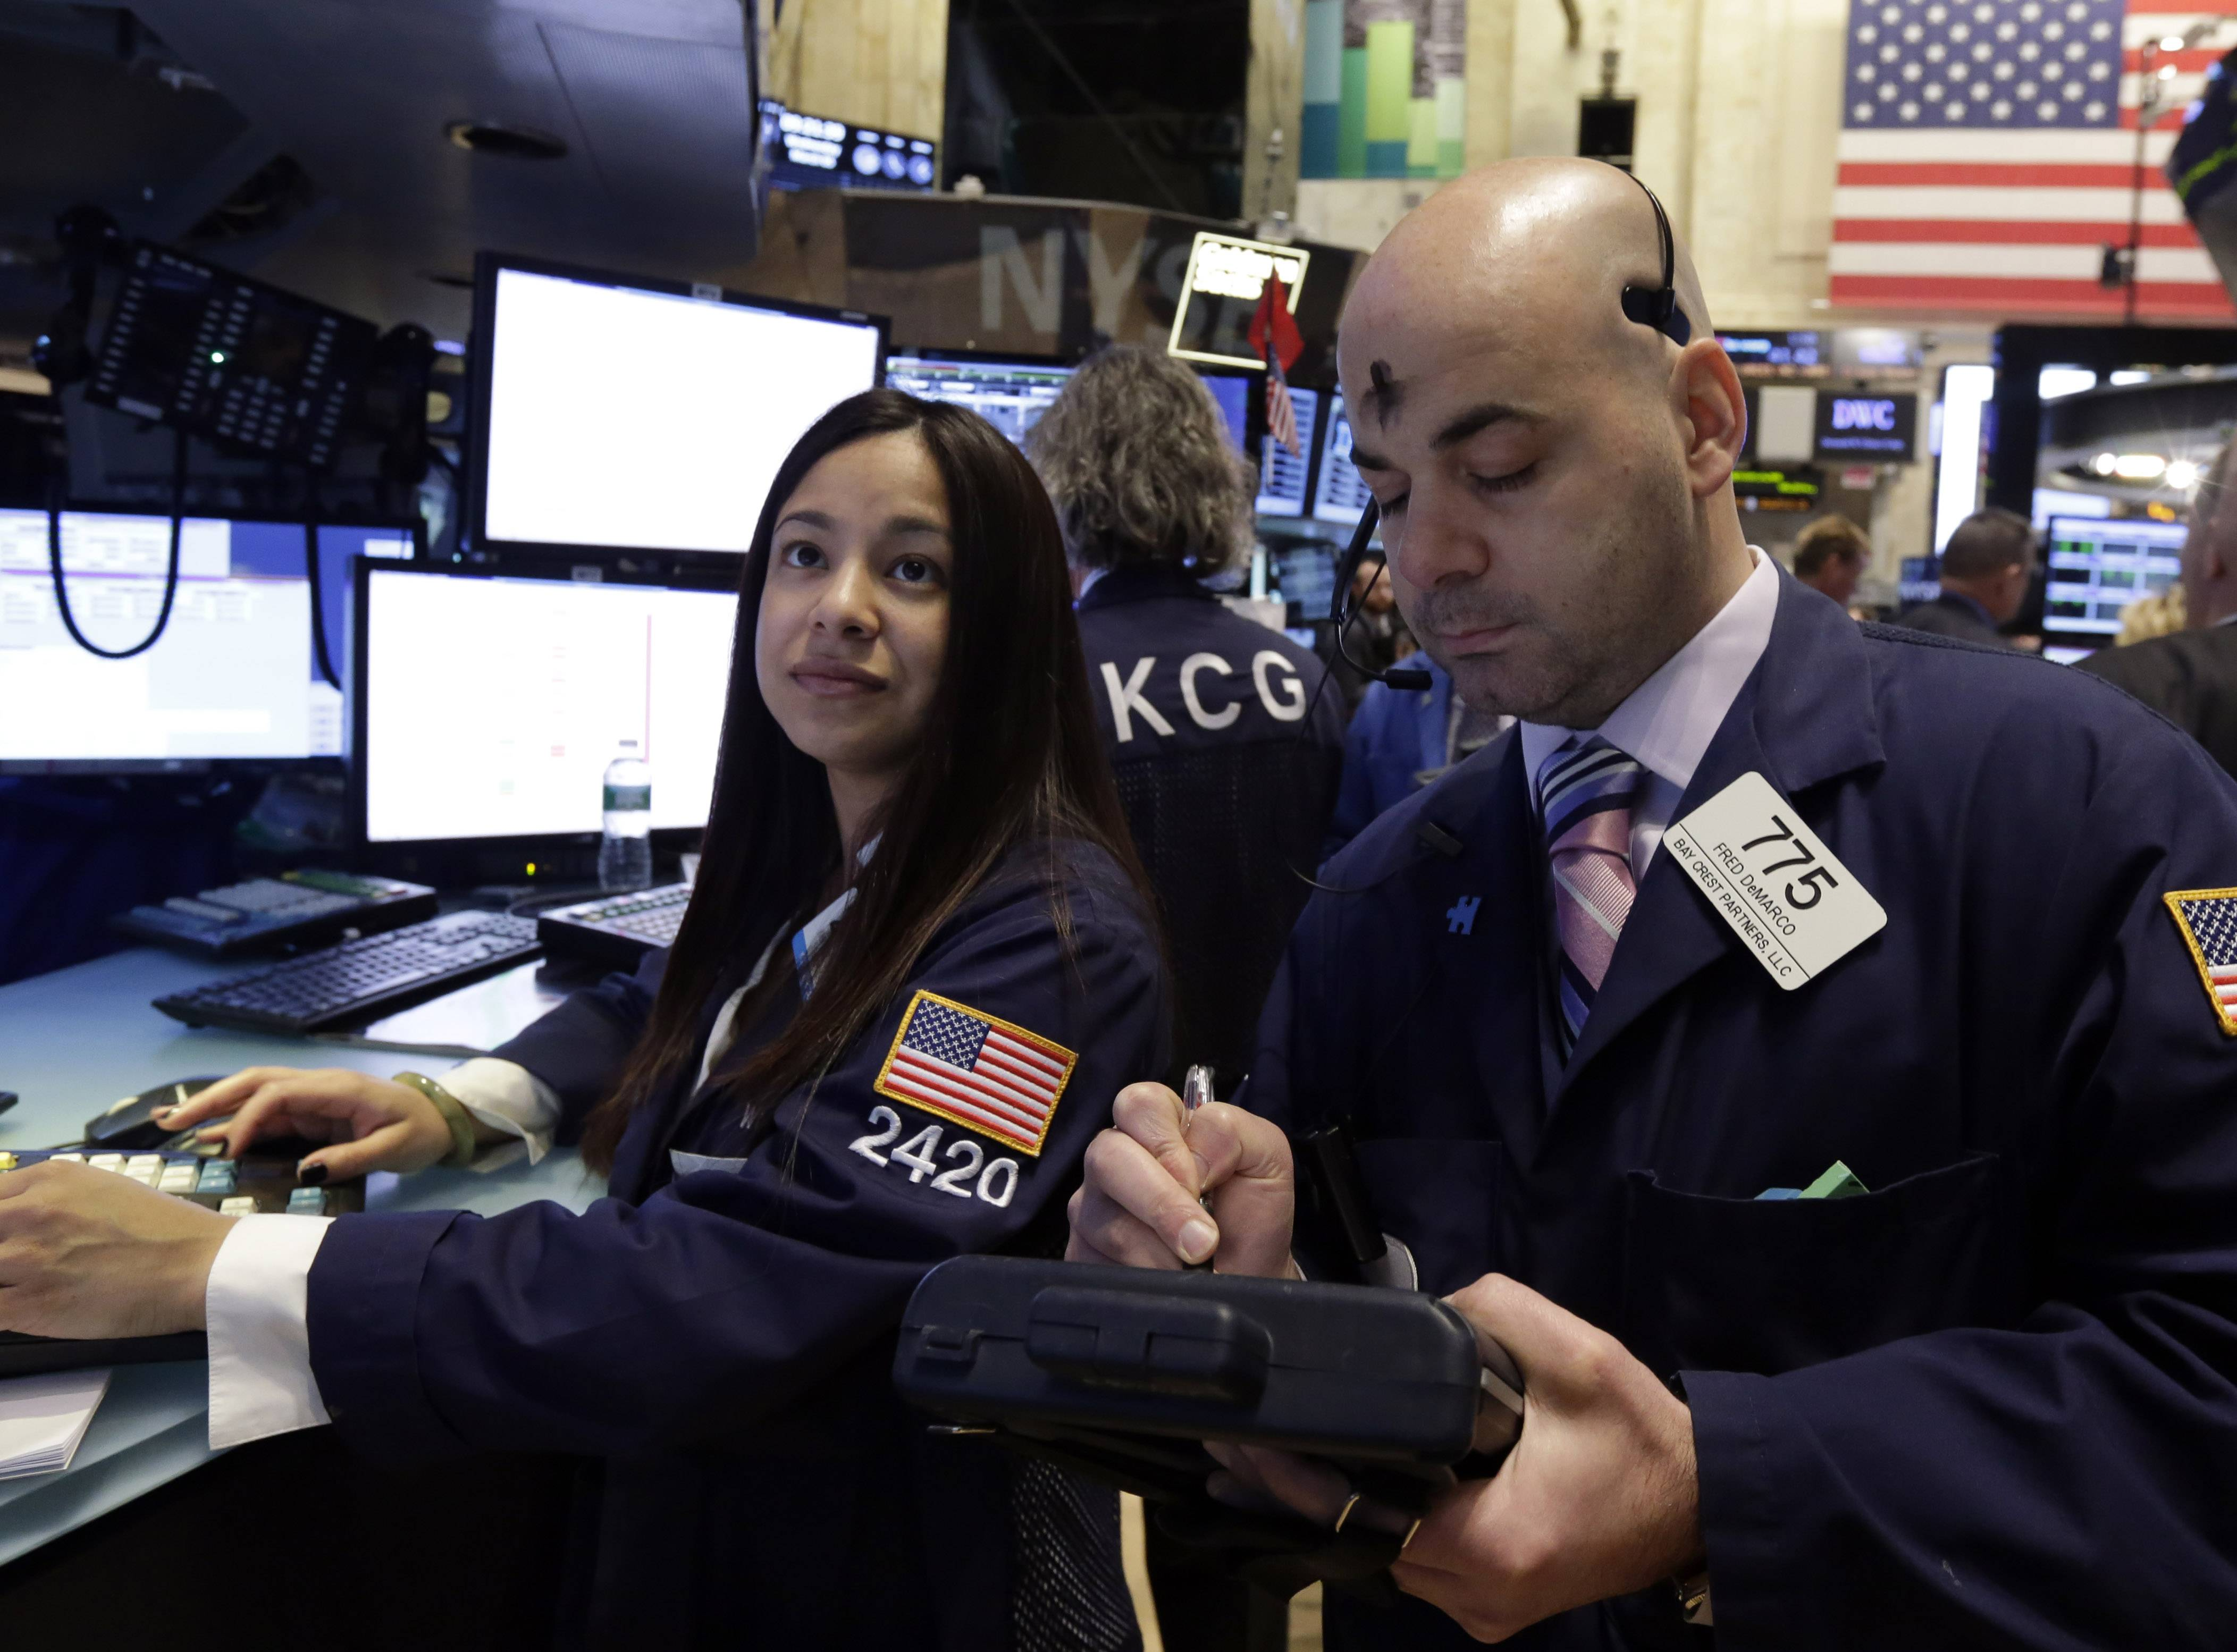 U.S. stocks were little changed Wednesday, after the Standard & Poor's 500 Index had risen the most this year a day earlier, as investors assessed the Ukraine crisis and weaker-than-estimated data on payrolls and services.